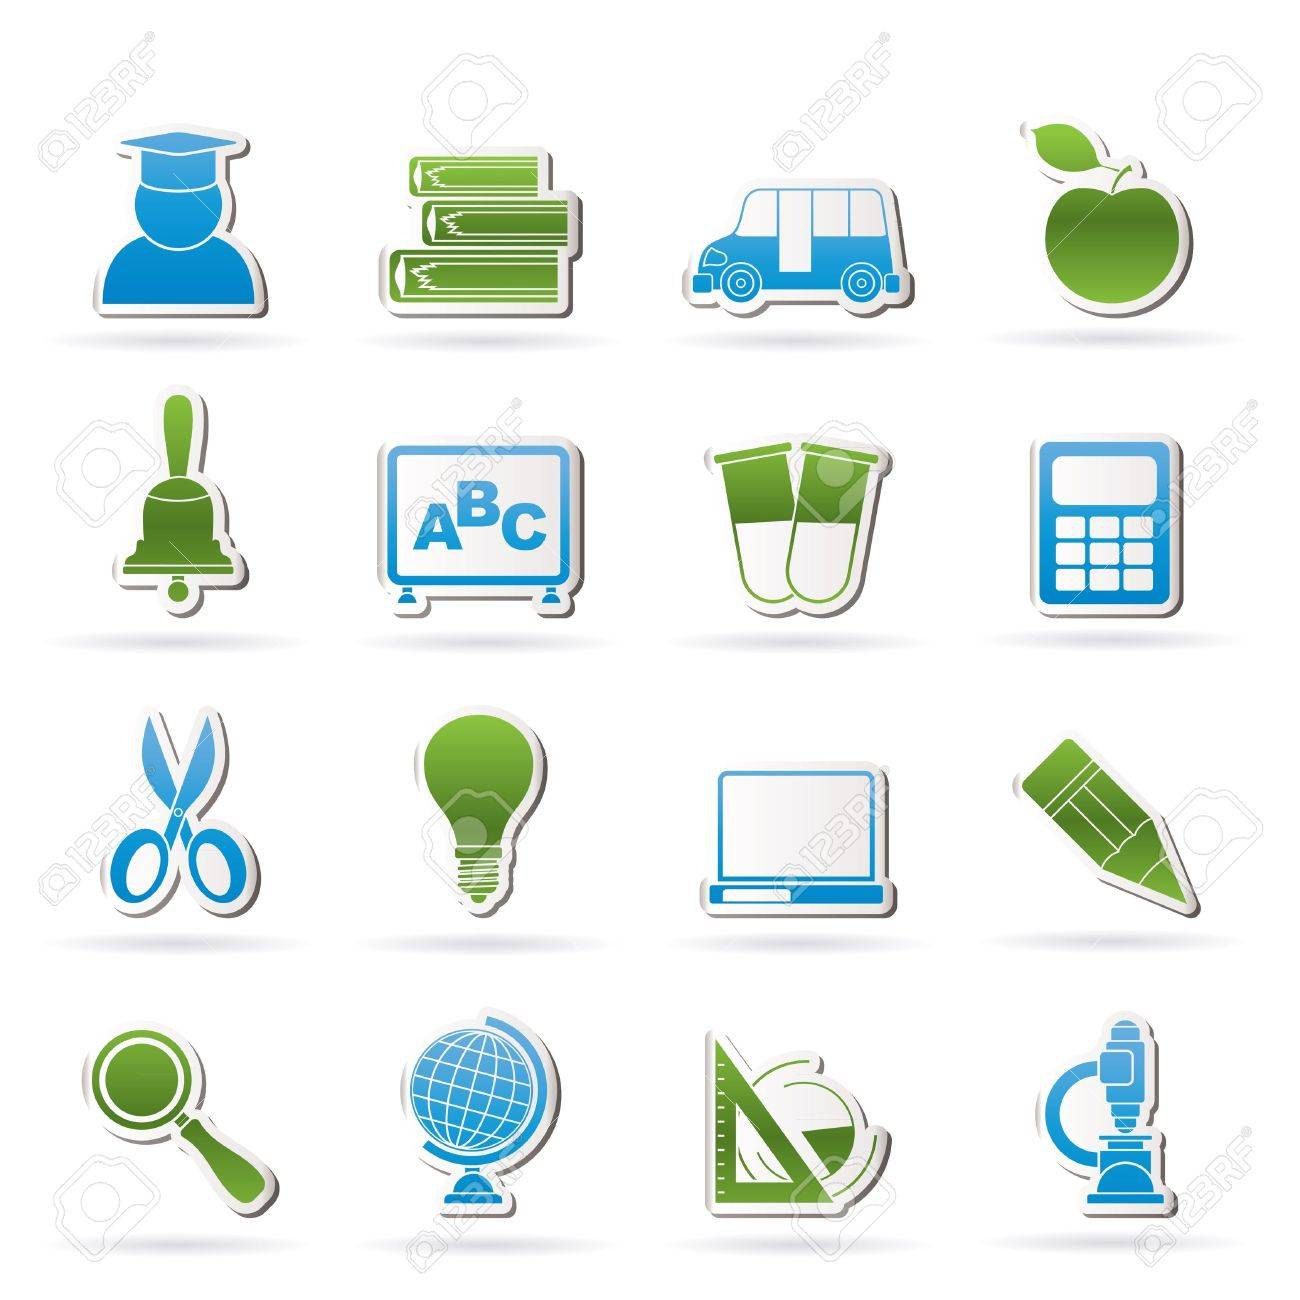 education and school icons - vector icon set Stock Vector - 12481154